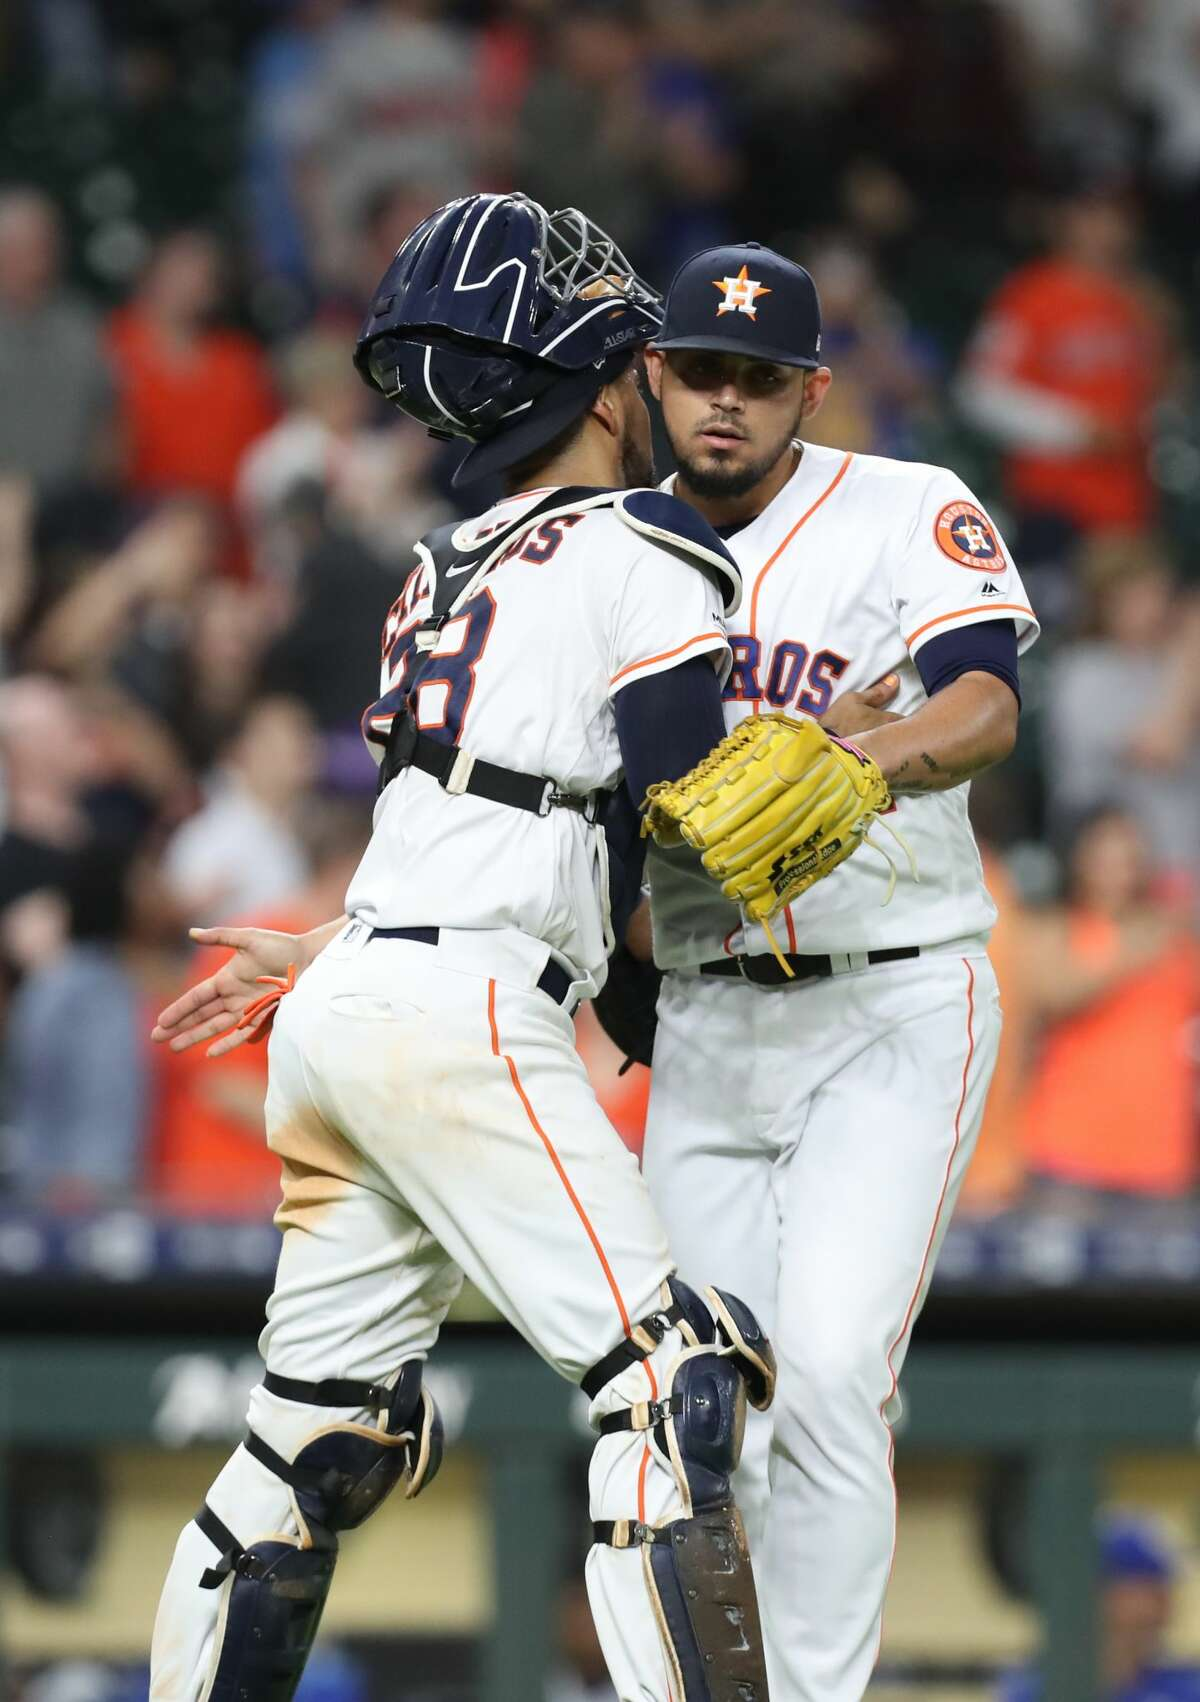 Houston Astros catcher Robinson Chirinos (28) congratulates Houston Astros relief pitcher Roberto Osuna (54) after defeating the Kansas City Royals in a MLB baseball game at Minute Maid Park Monday, May 6, 2019, in Houston.